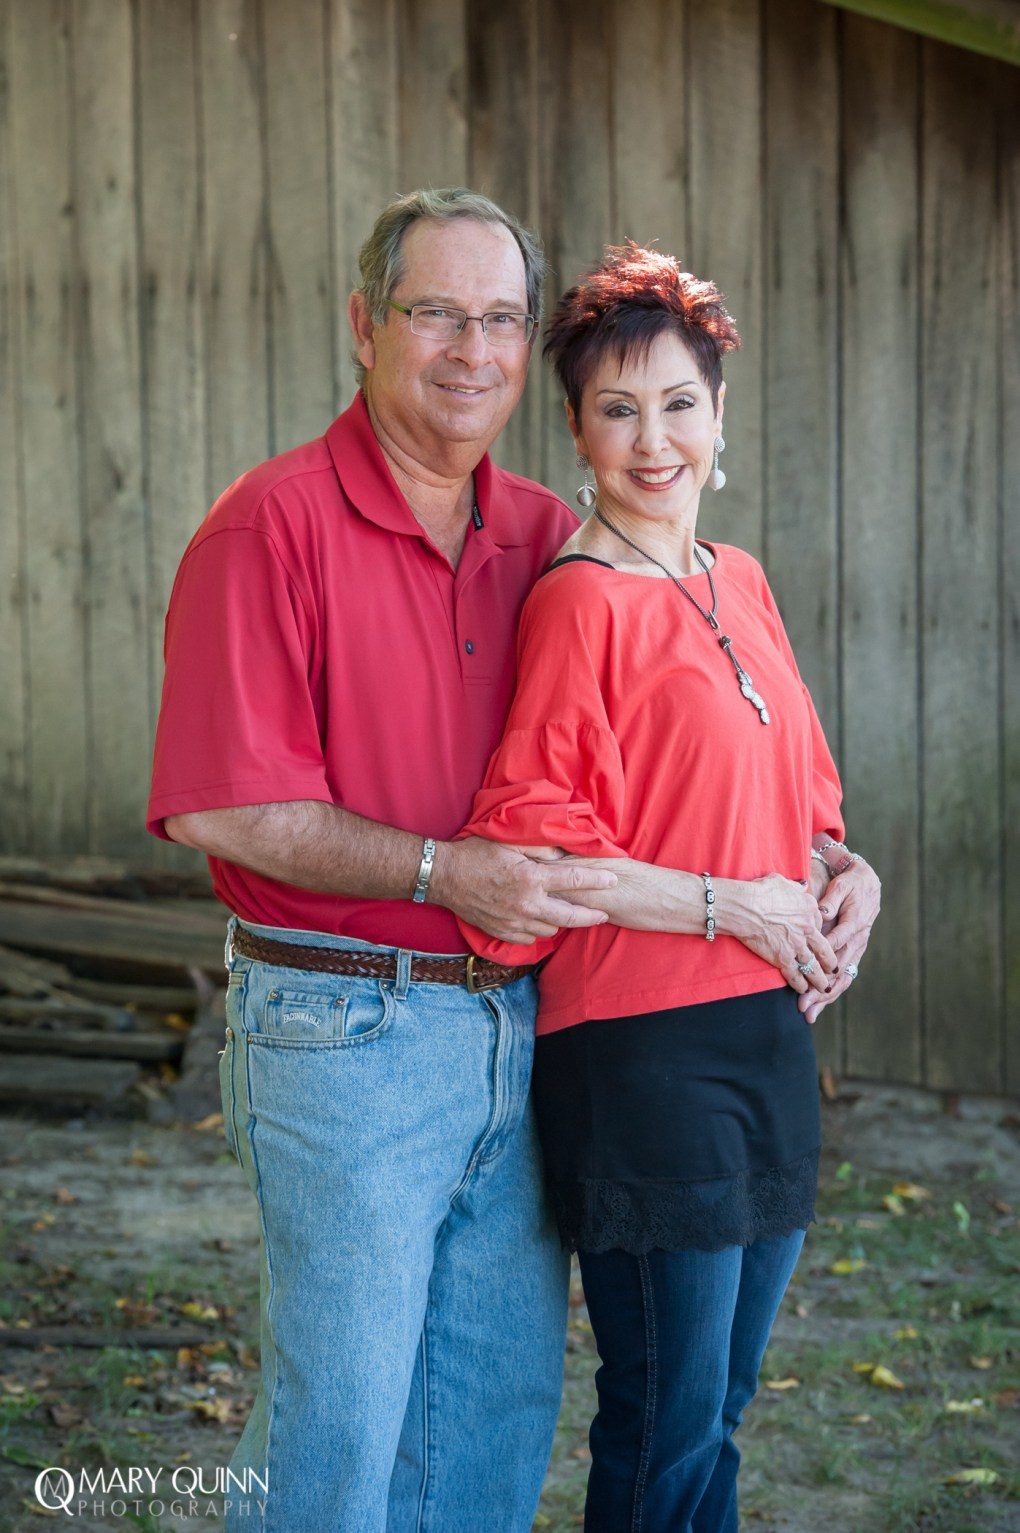 Family Photographer in Medford New Jersey